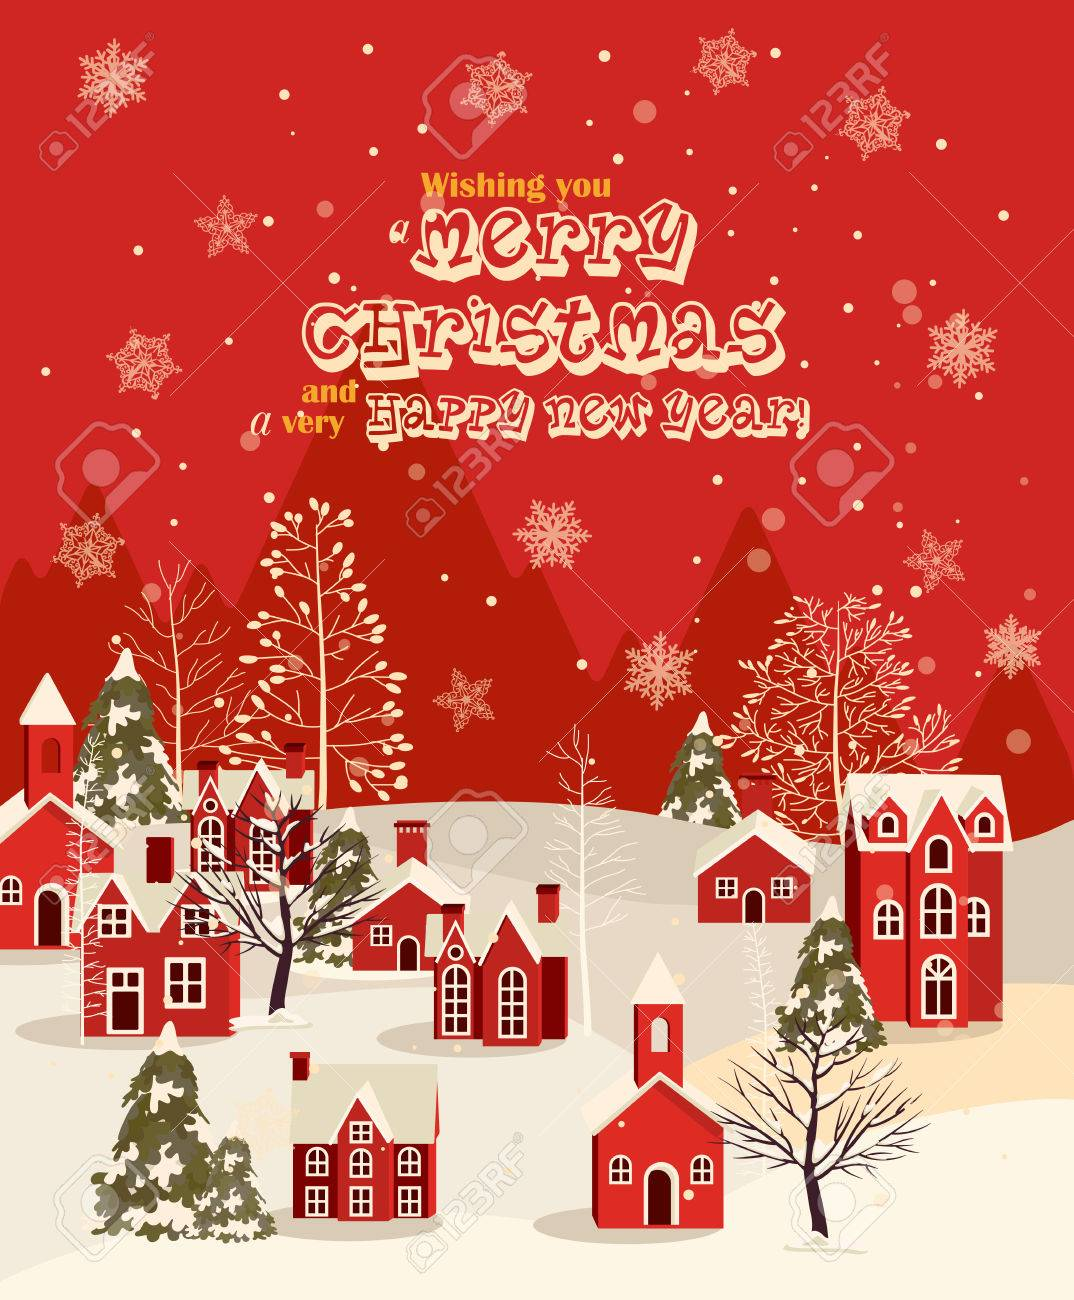 Christmas greeting card with vintage house winter town snowfall christmas greeting card with vintage house winter town snowfall illustration stock vector 50058043 m4hsunfo